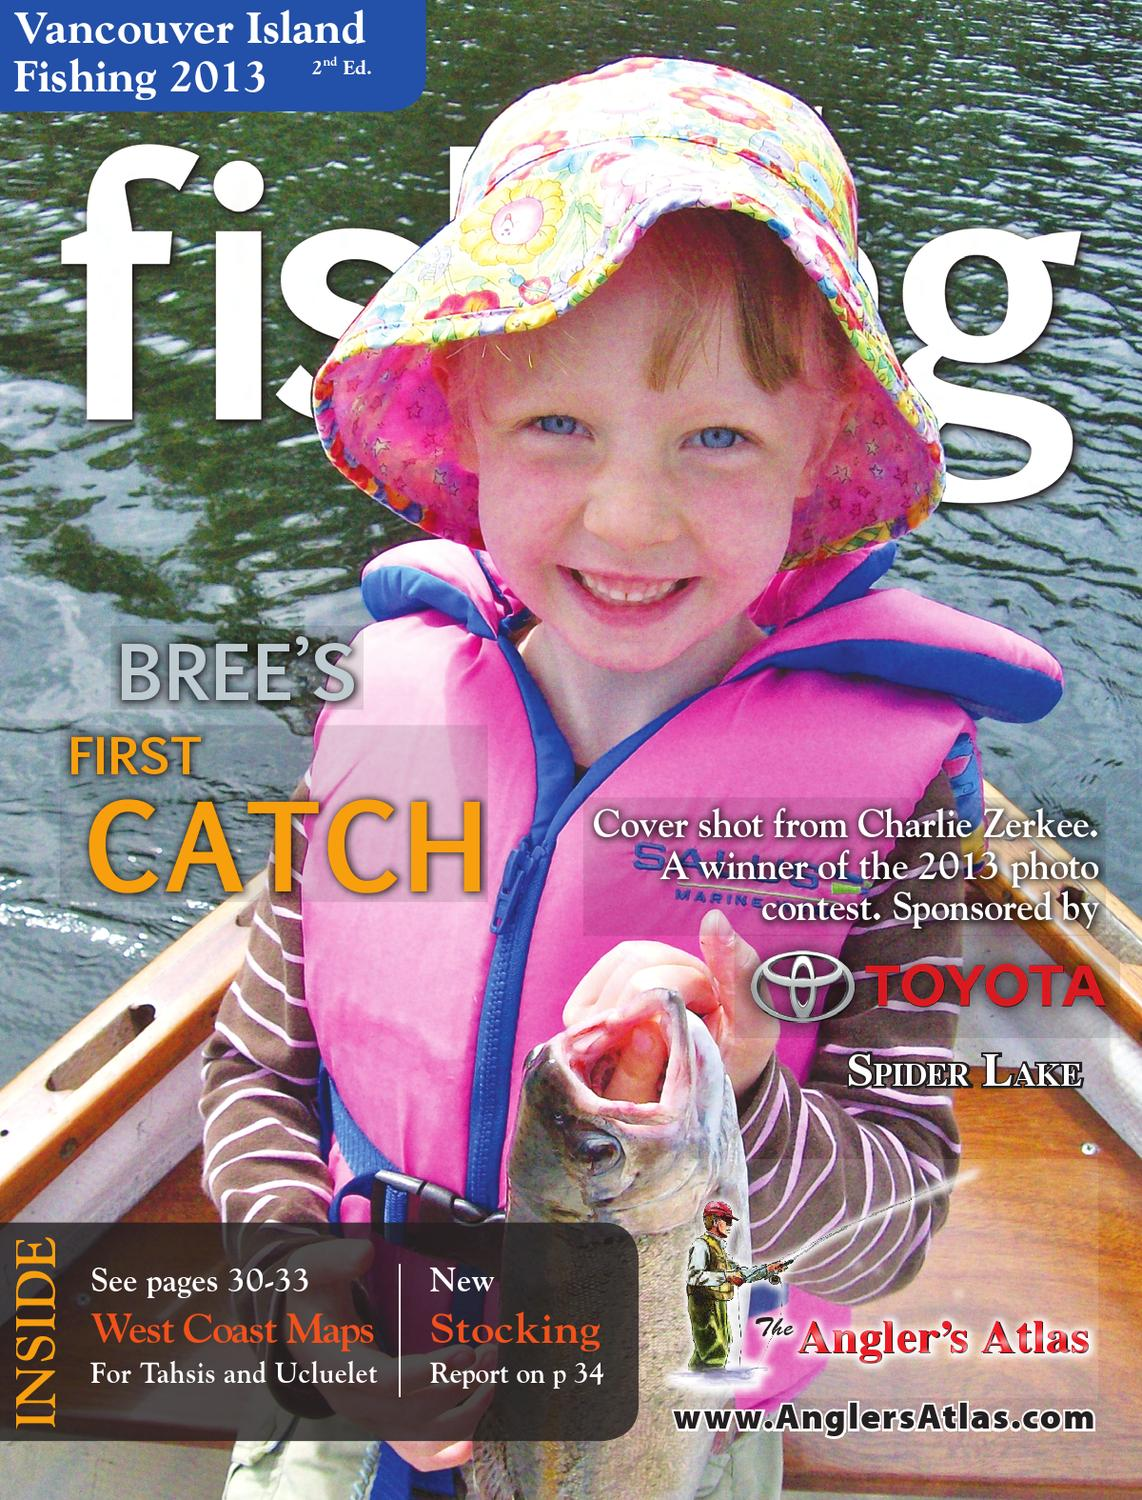 Vancouver island fishing by kamloops daily news issuu for Nd game and fish stocking report